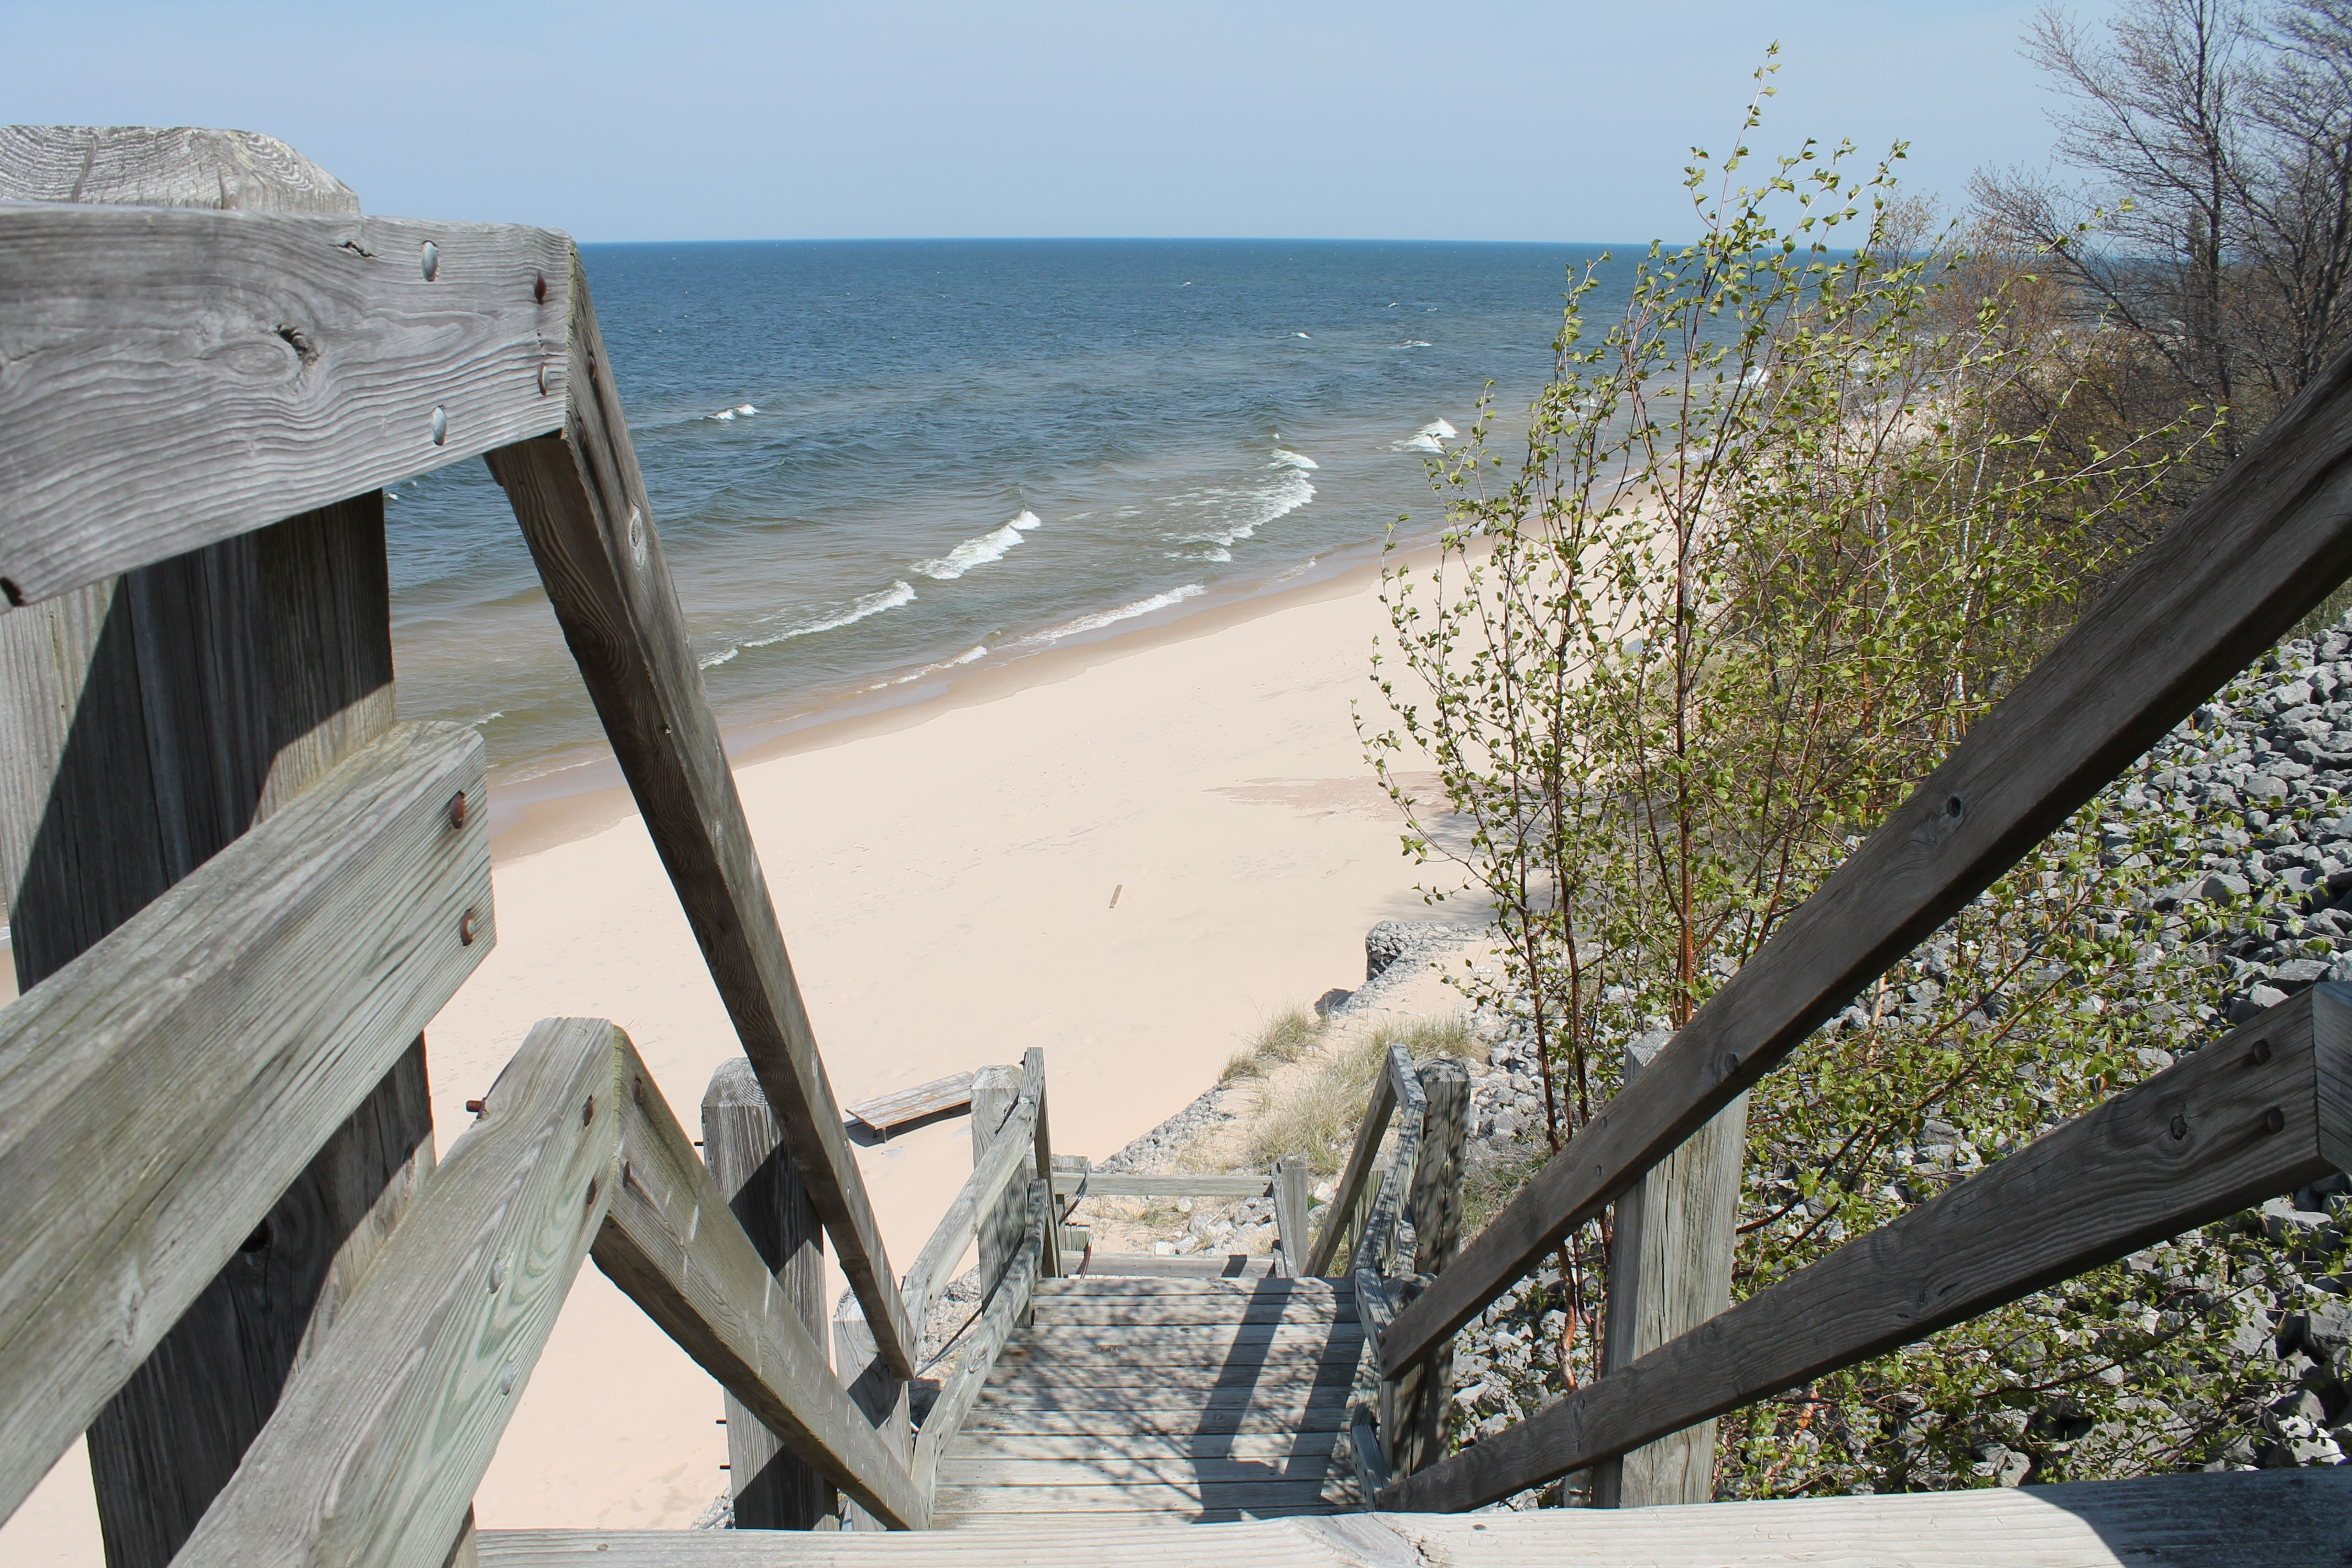 Orchard Beach State Park (Manistee) - 2018 All You Need to